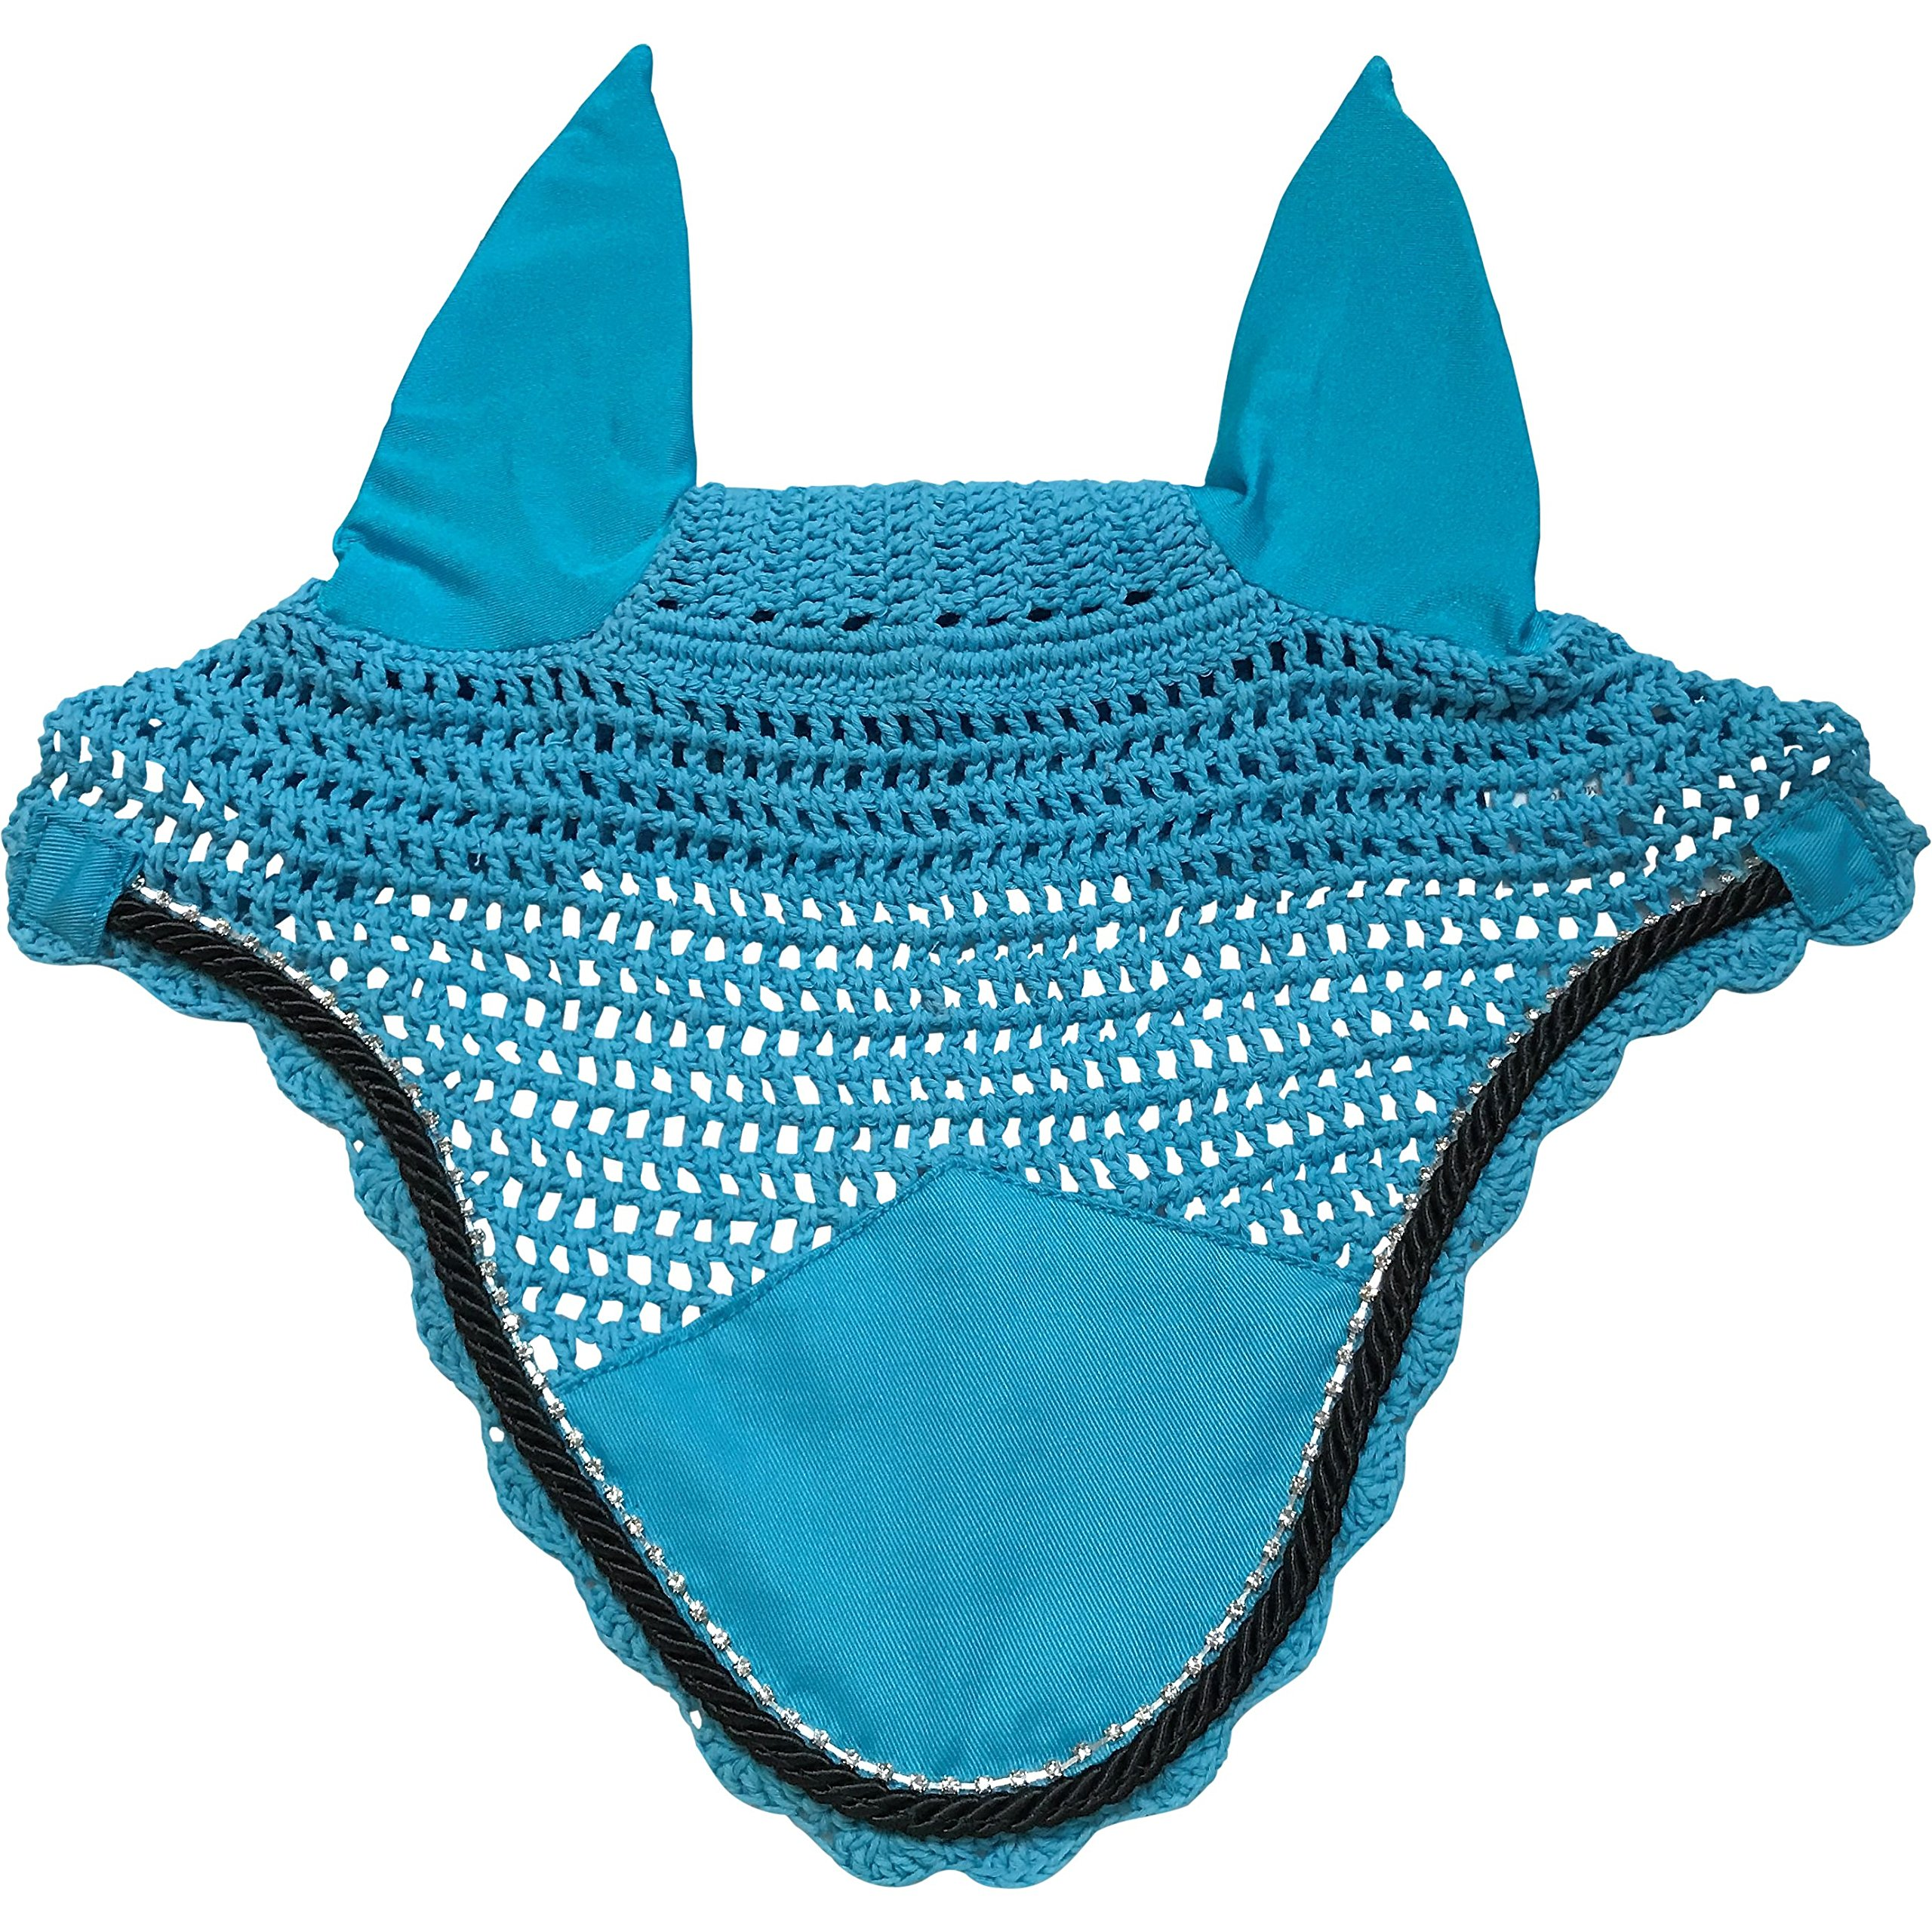 Horse Bonnets/Fly Veil with Scalloped Edge and Rope and Bling Trim (Turquoise/Sea Blue & Black Rope)